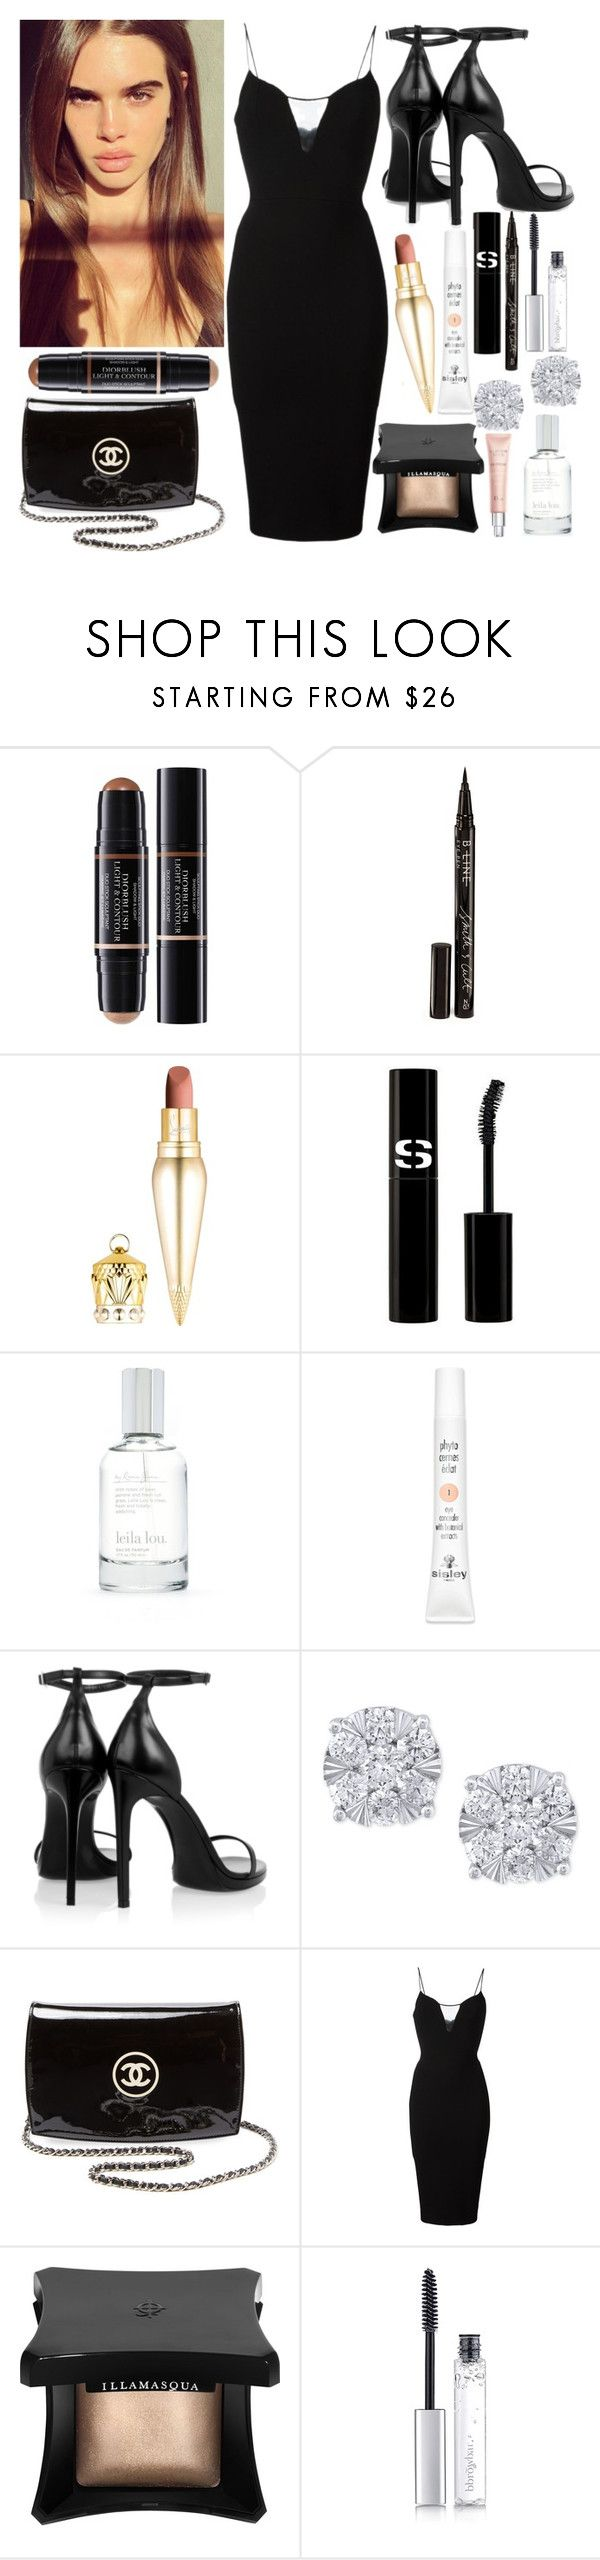 """""""Remember The Dignity Of Your Womanhood. Do Not Appeal, Do Not Beg, Do Not Grovel. Take Courage, Join Hands, Stand Beside Us, Fight With Us.-Christabel Pankhurst"""" by jacie ❤ liked on Polyvore featuring Christian Dior, Smith & Cult, Christian Louboutin, Sisley, Splendid, By Zoé, Yves Saint Laurent, Effy Jewelry, Chanel and Victoria Beckham"""